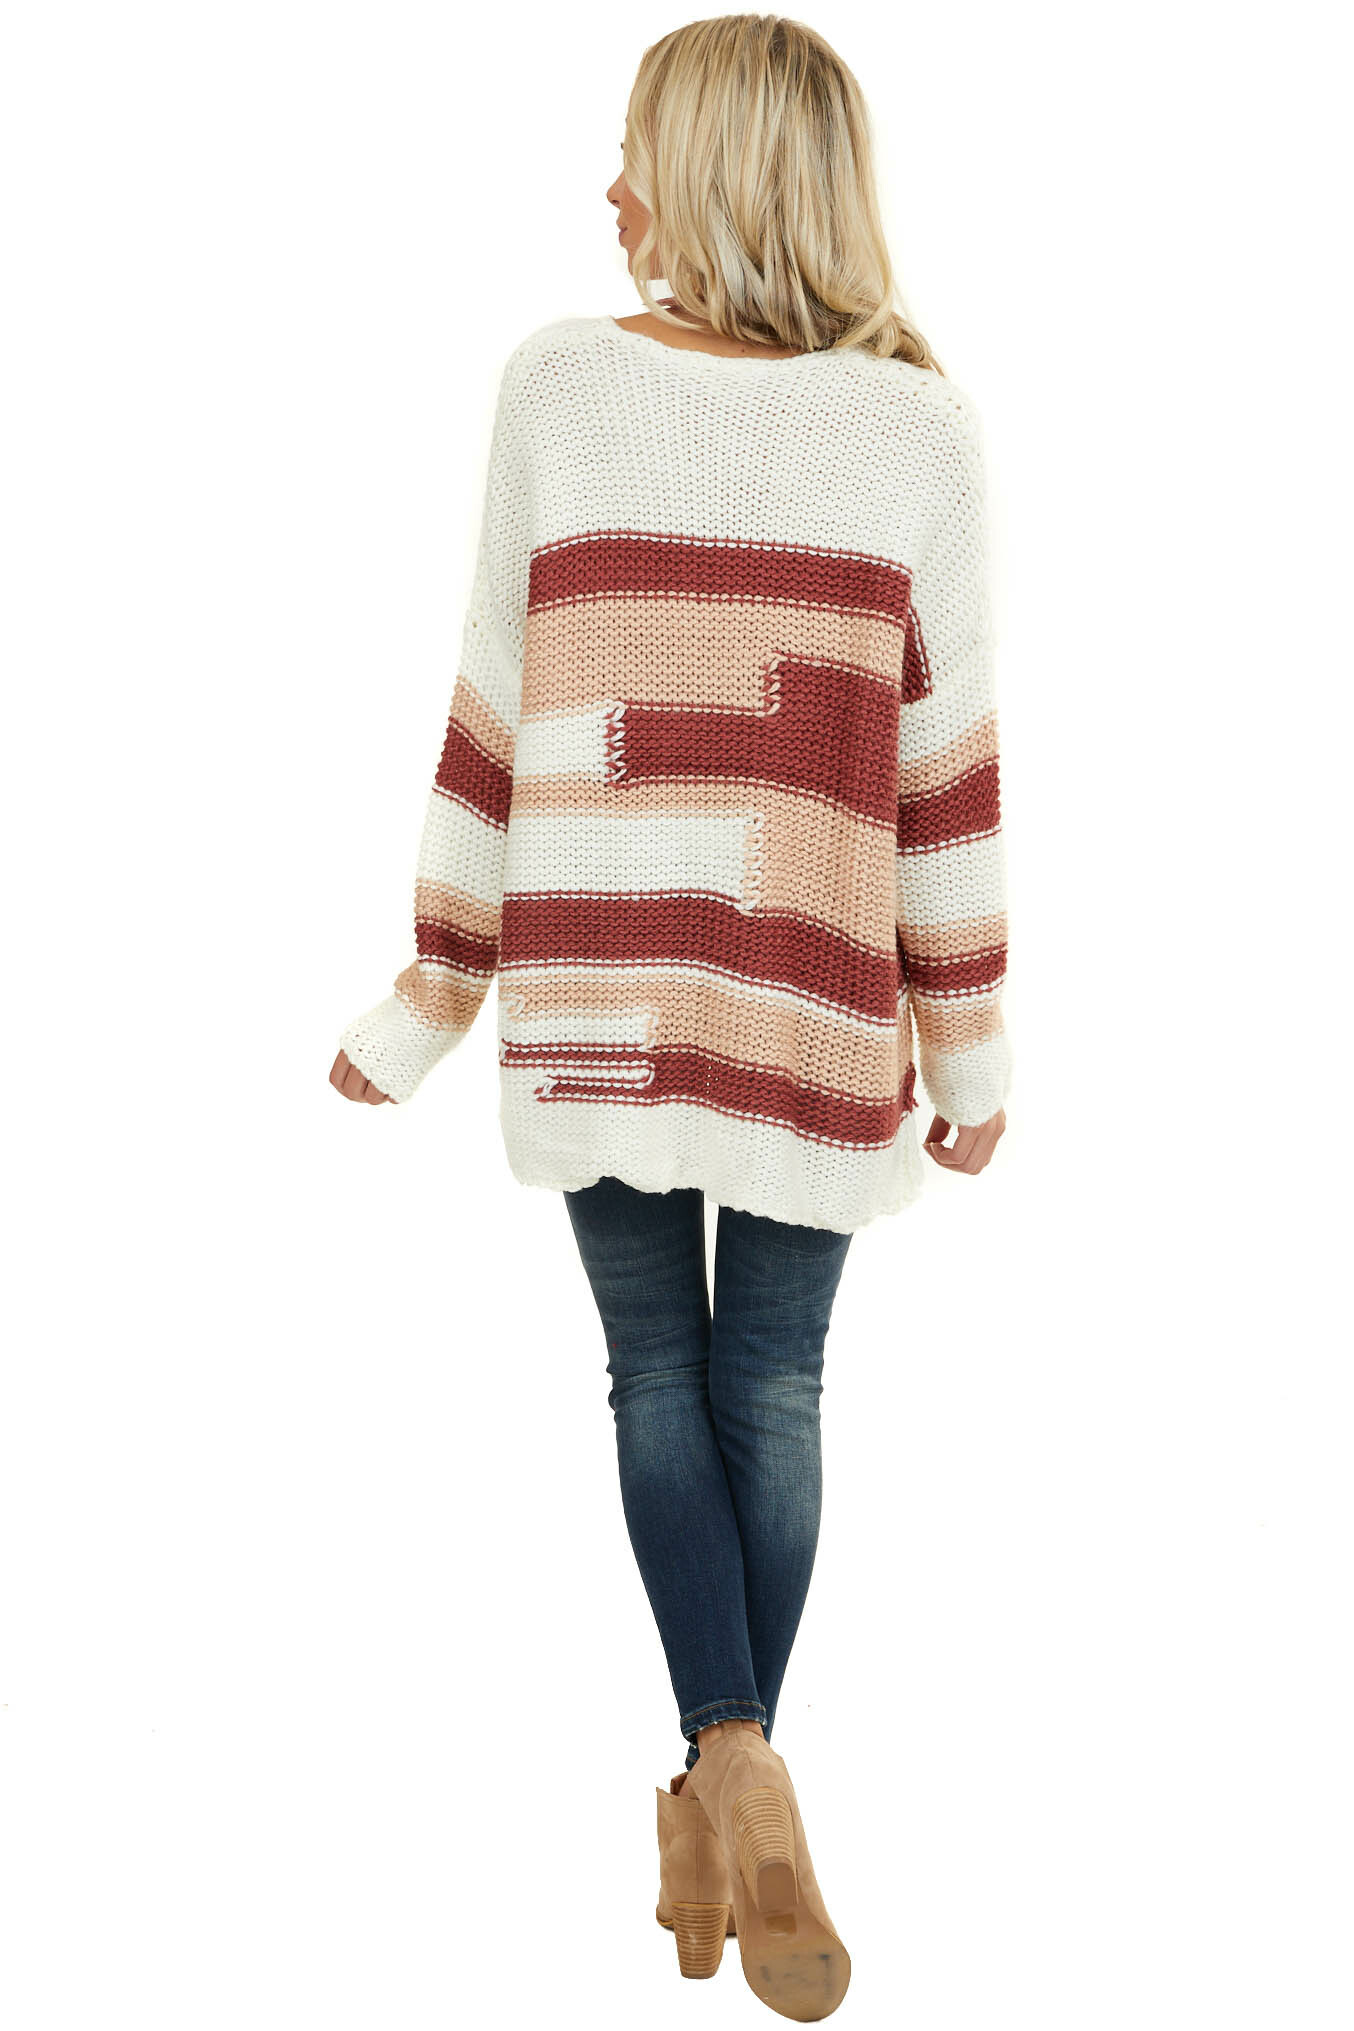 Rust Patterned Chunky Knit Sweater with Fringe Hemline